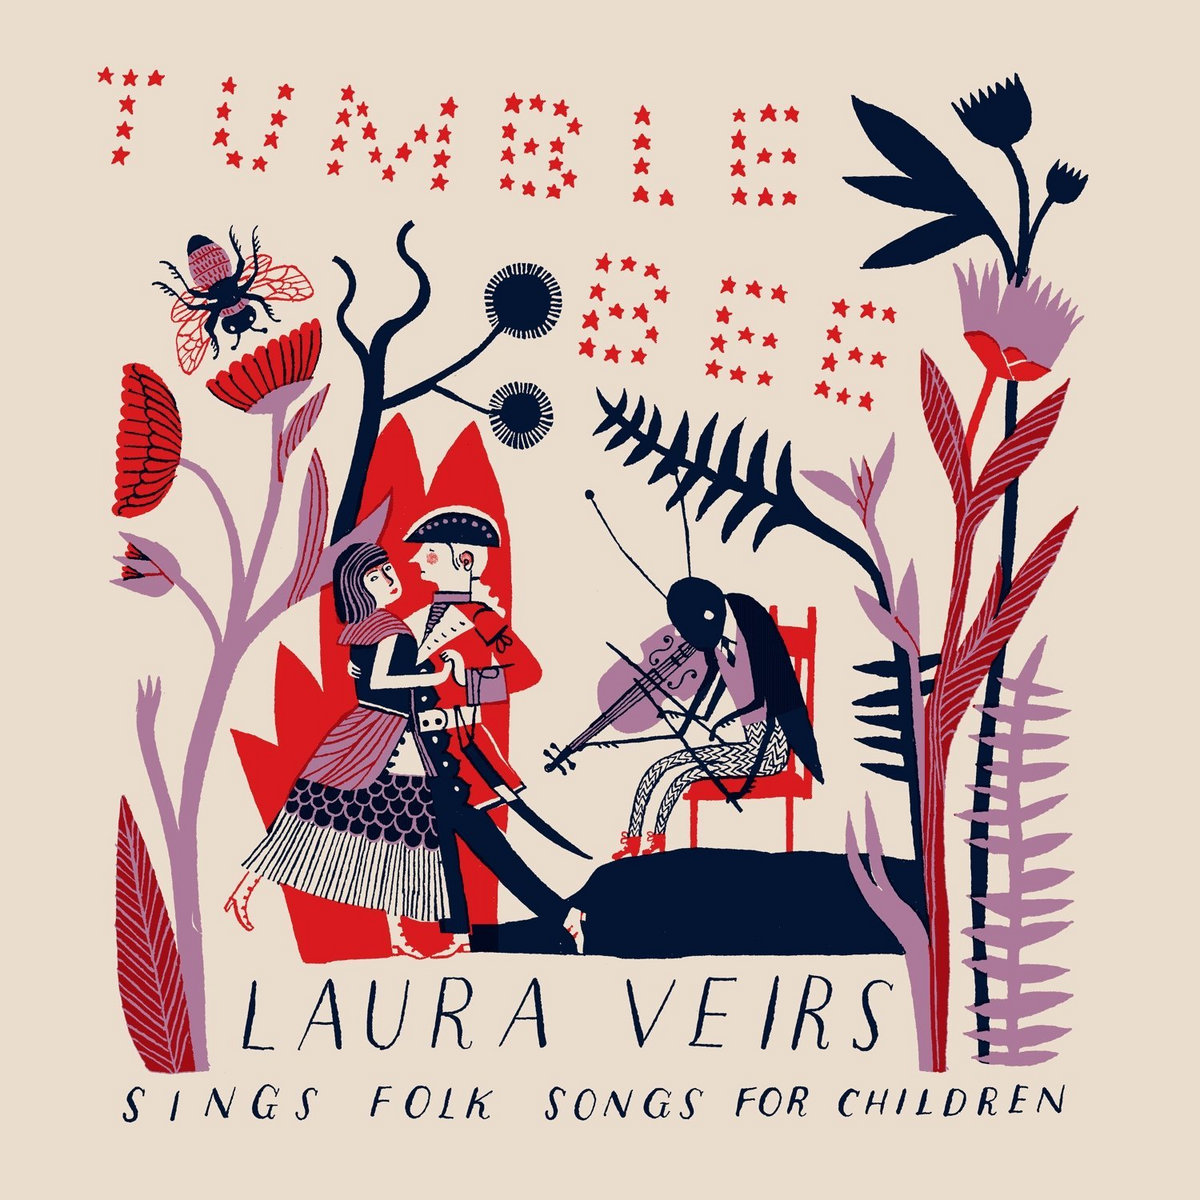 Laura Veirs, Tumble Bee